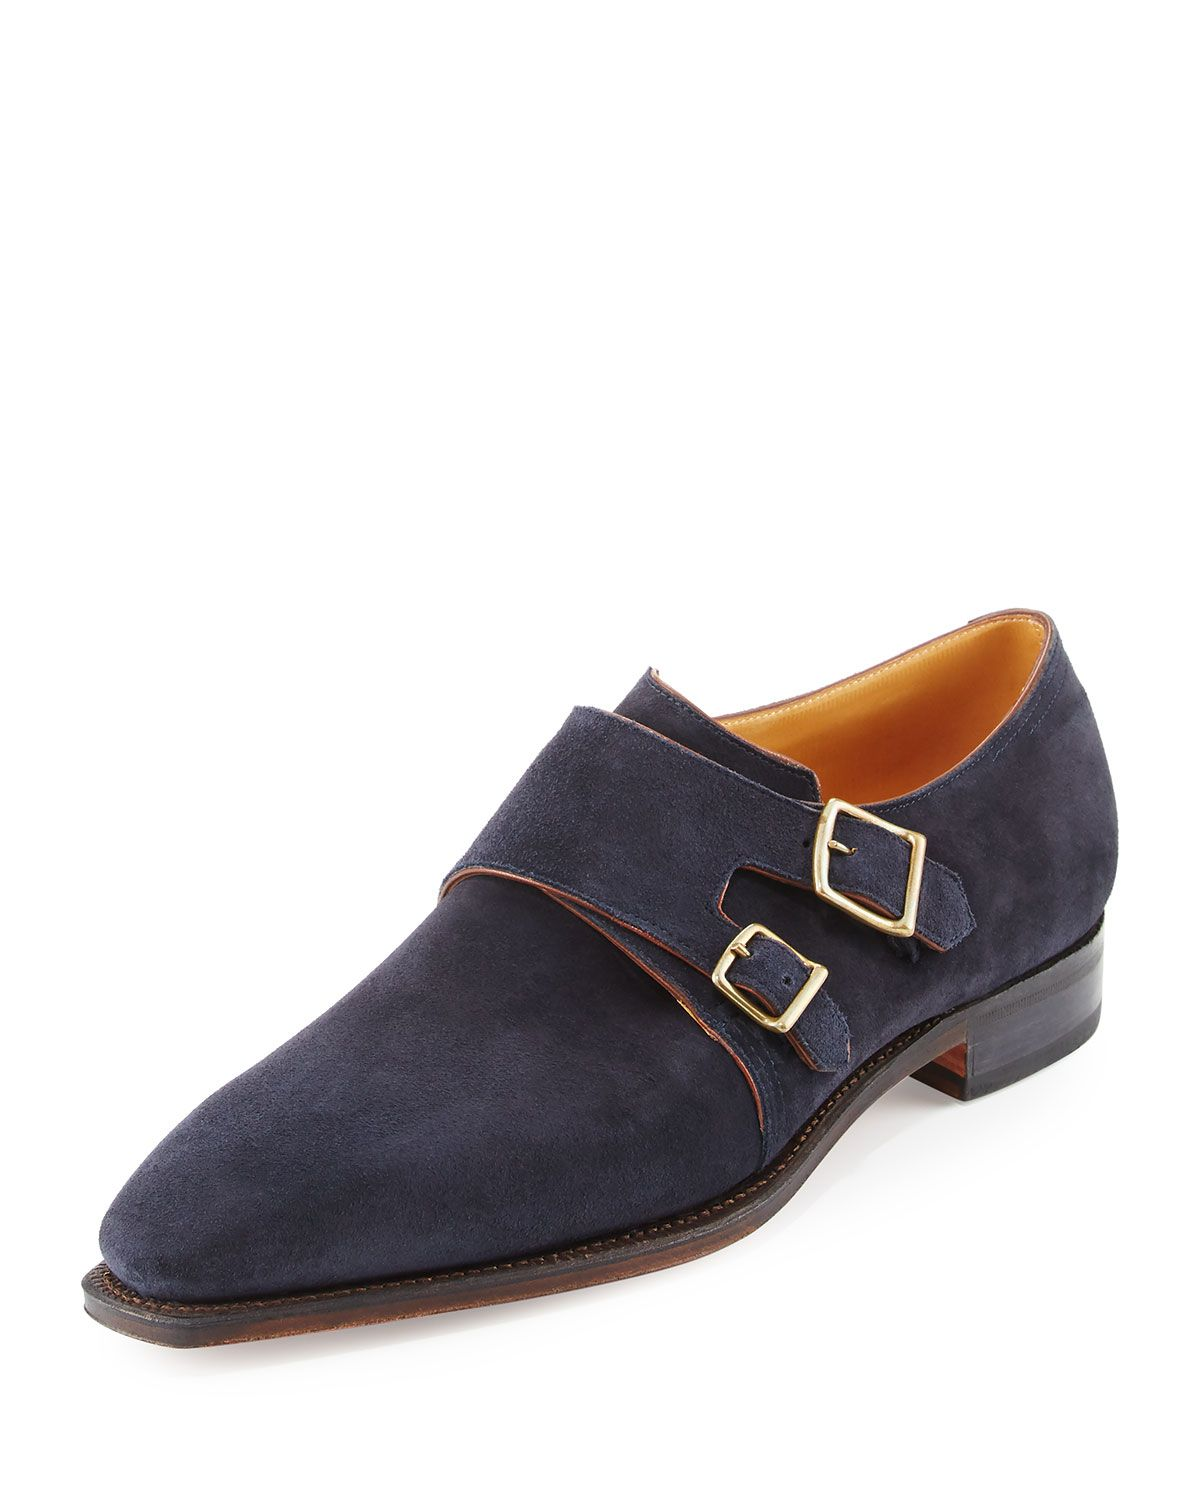 Corthay Arca Suede Double Monk Shoe Navy Corthay Shoes Shoes French Shoes Hot Shoes